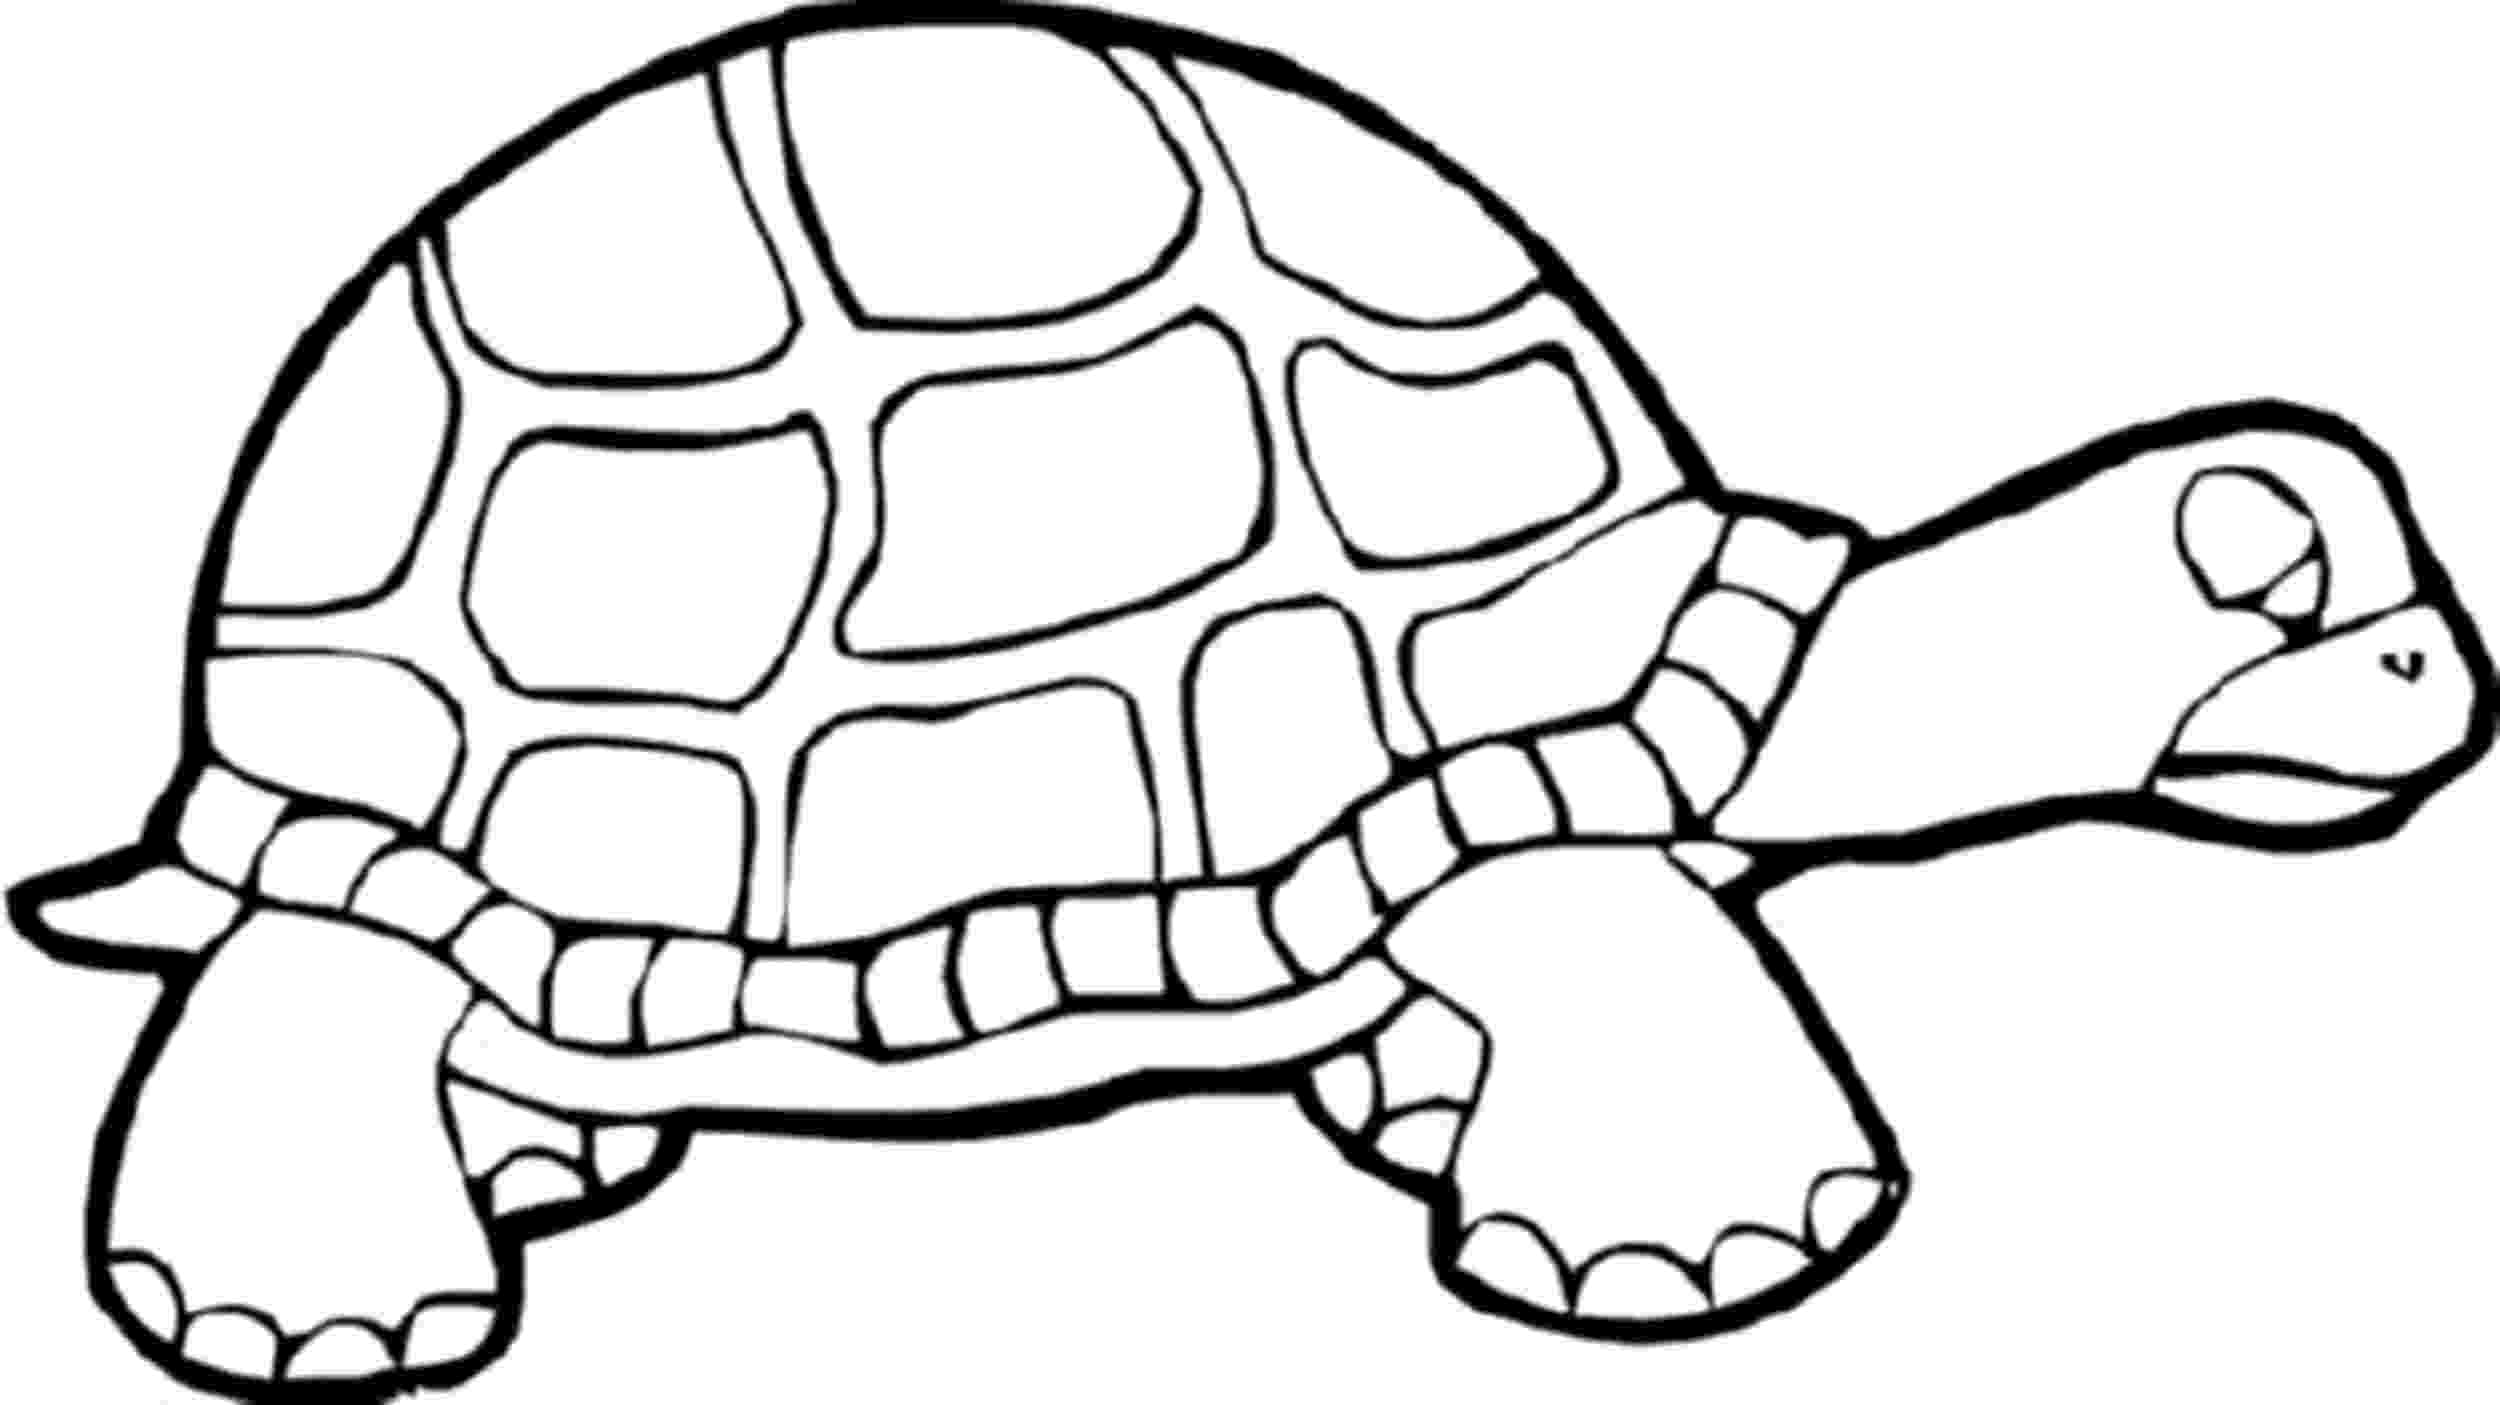 coloring pictures of turtles turtles to color for kids turtles kids coloring pages coloring turtles pictures of